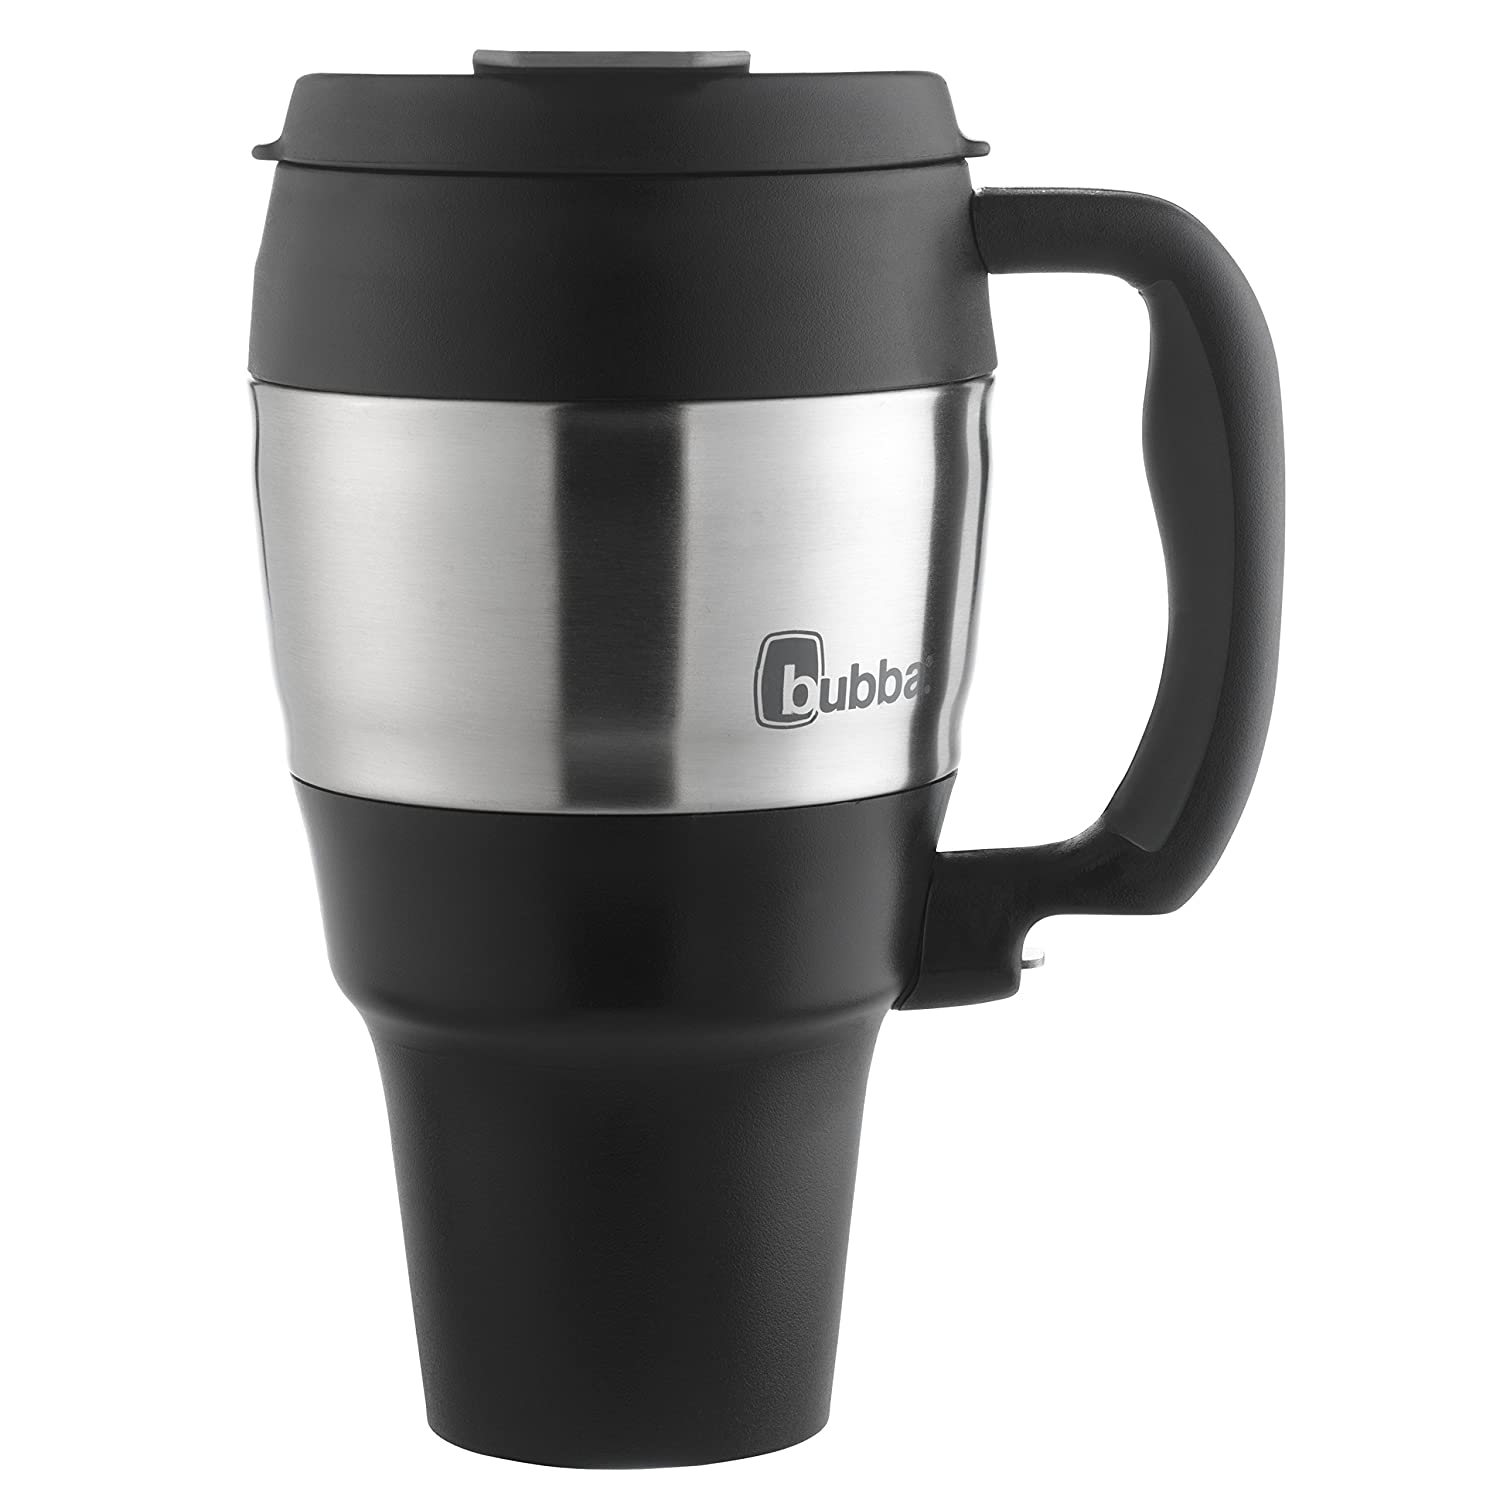 bubba brands classic insulated travel mug 34 oz black. Black Bedroom Furniture Sets. Home Design Ideas